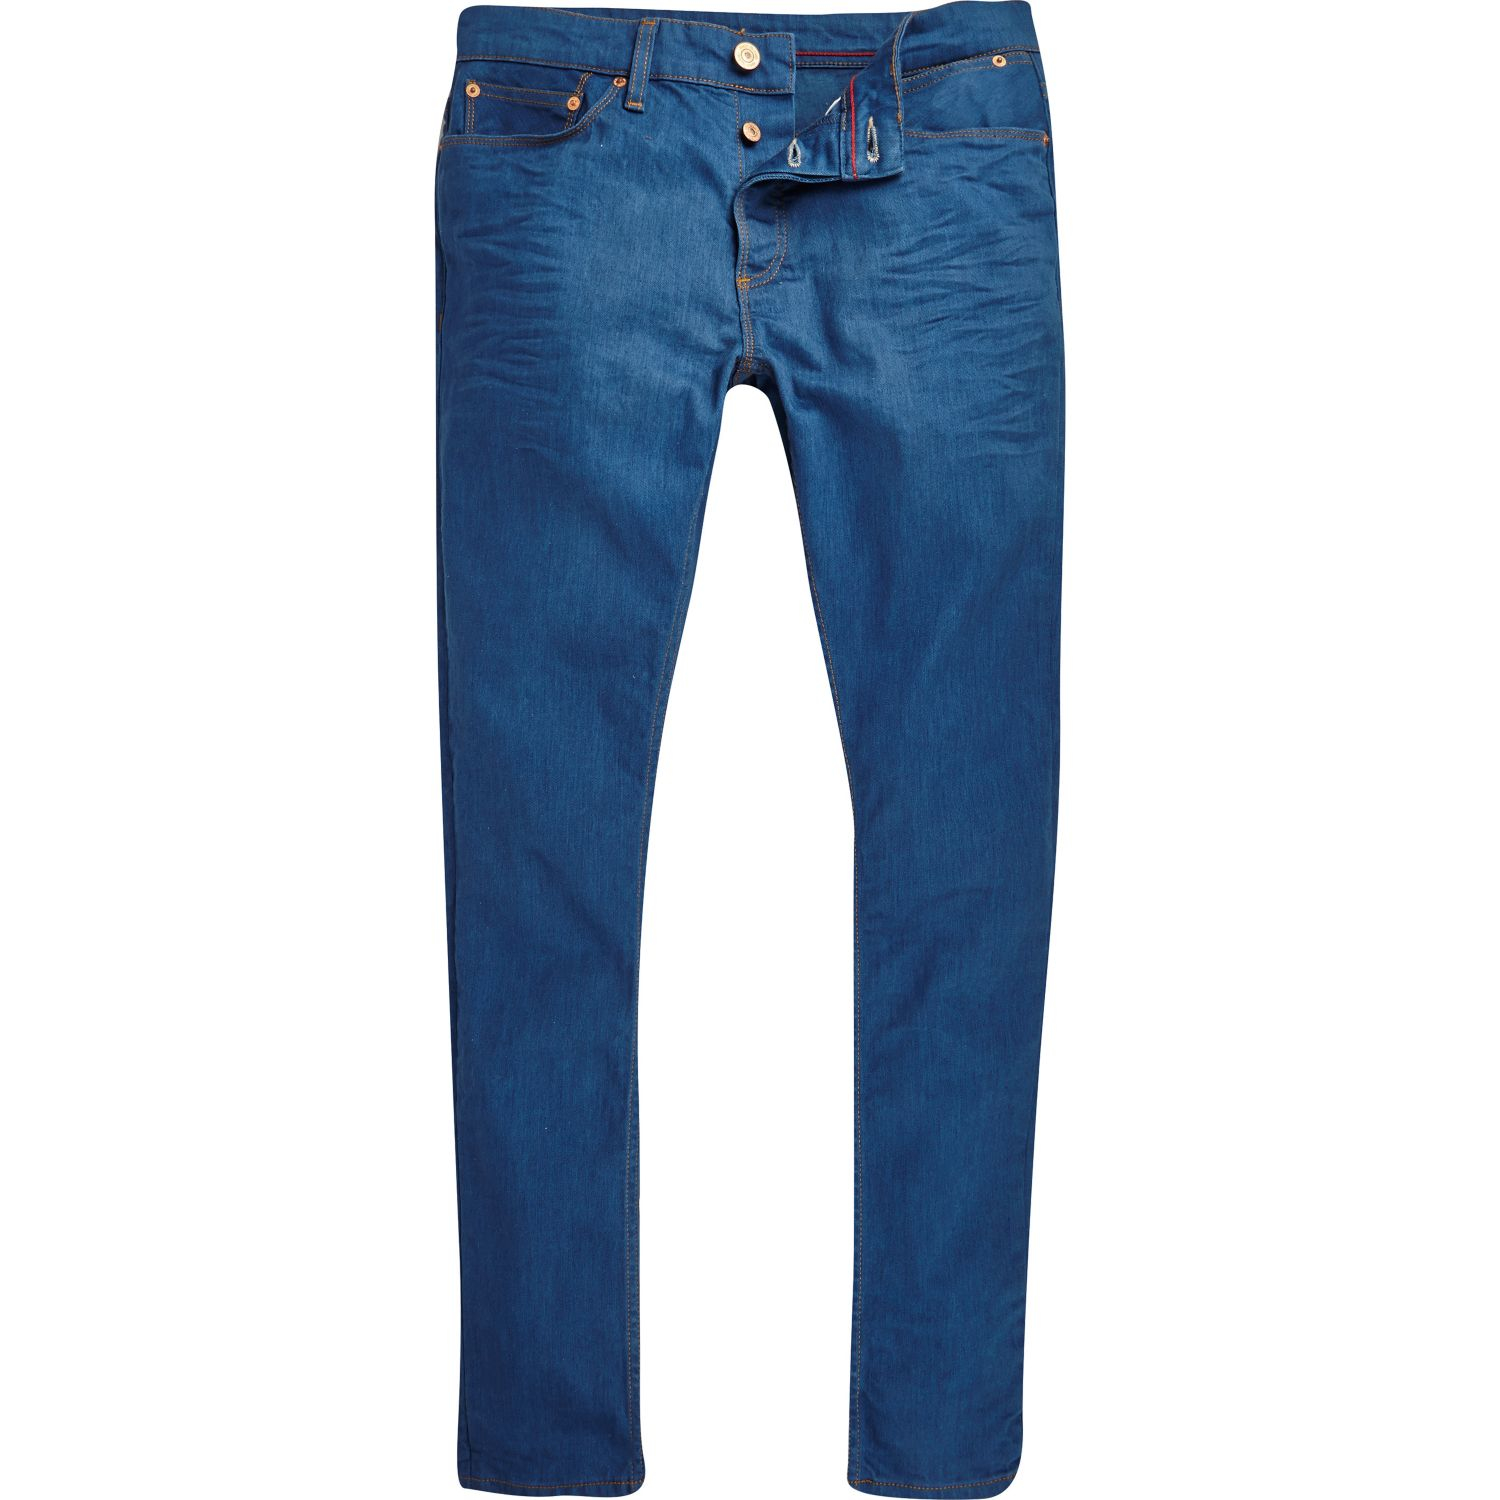 Shop Levi's at Eastbay. When you want the classic Levi's fit and style, you can't go wrong with the Available in a variety of styles. Free Shipping on select products.